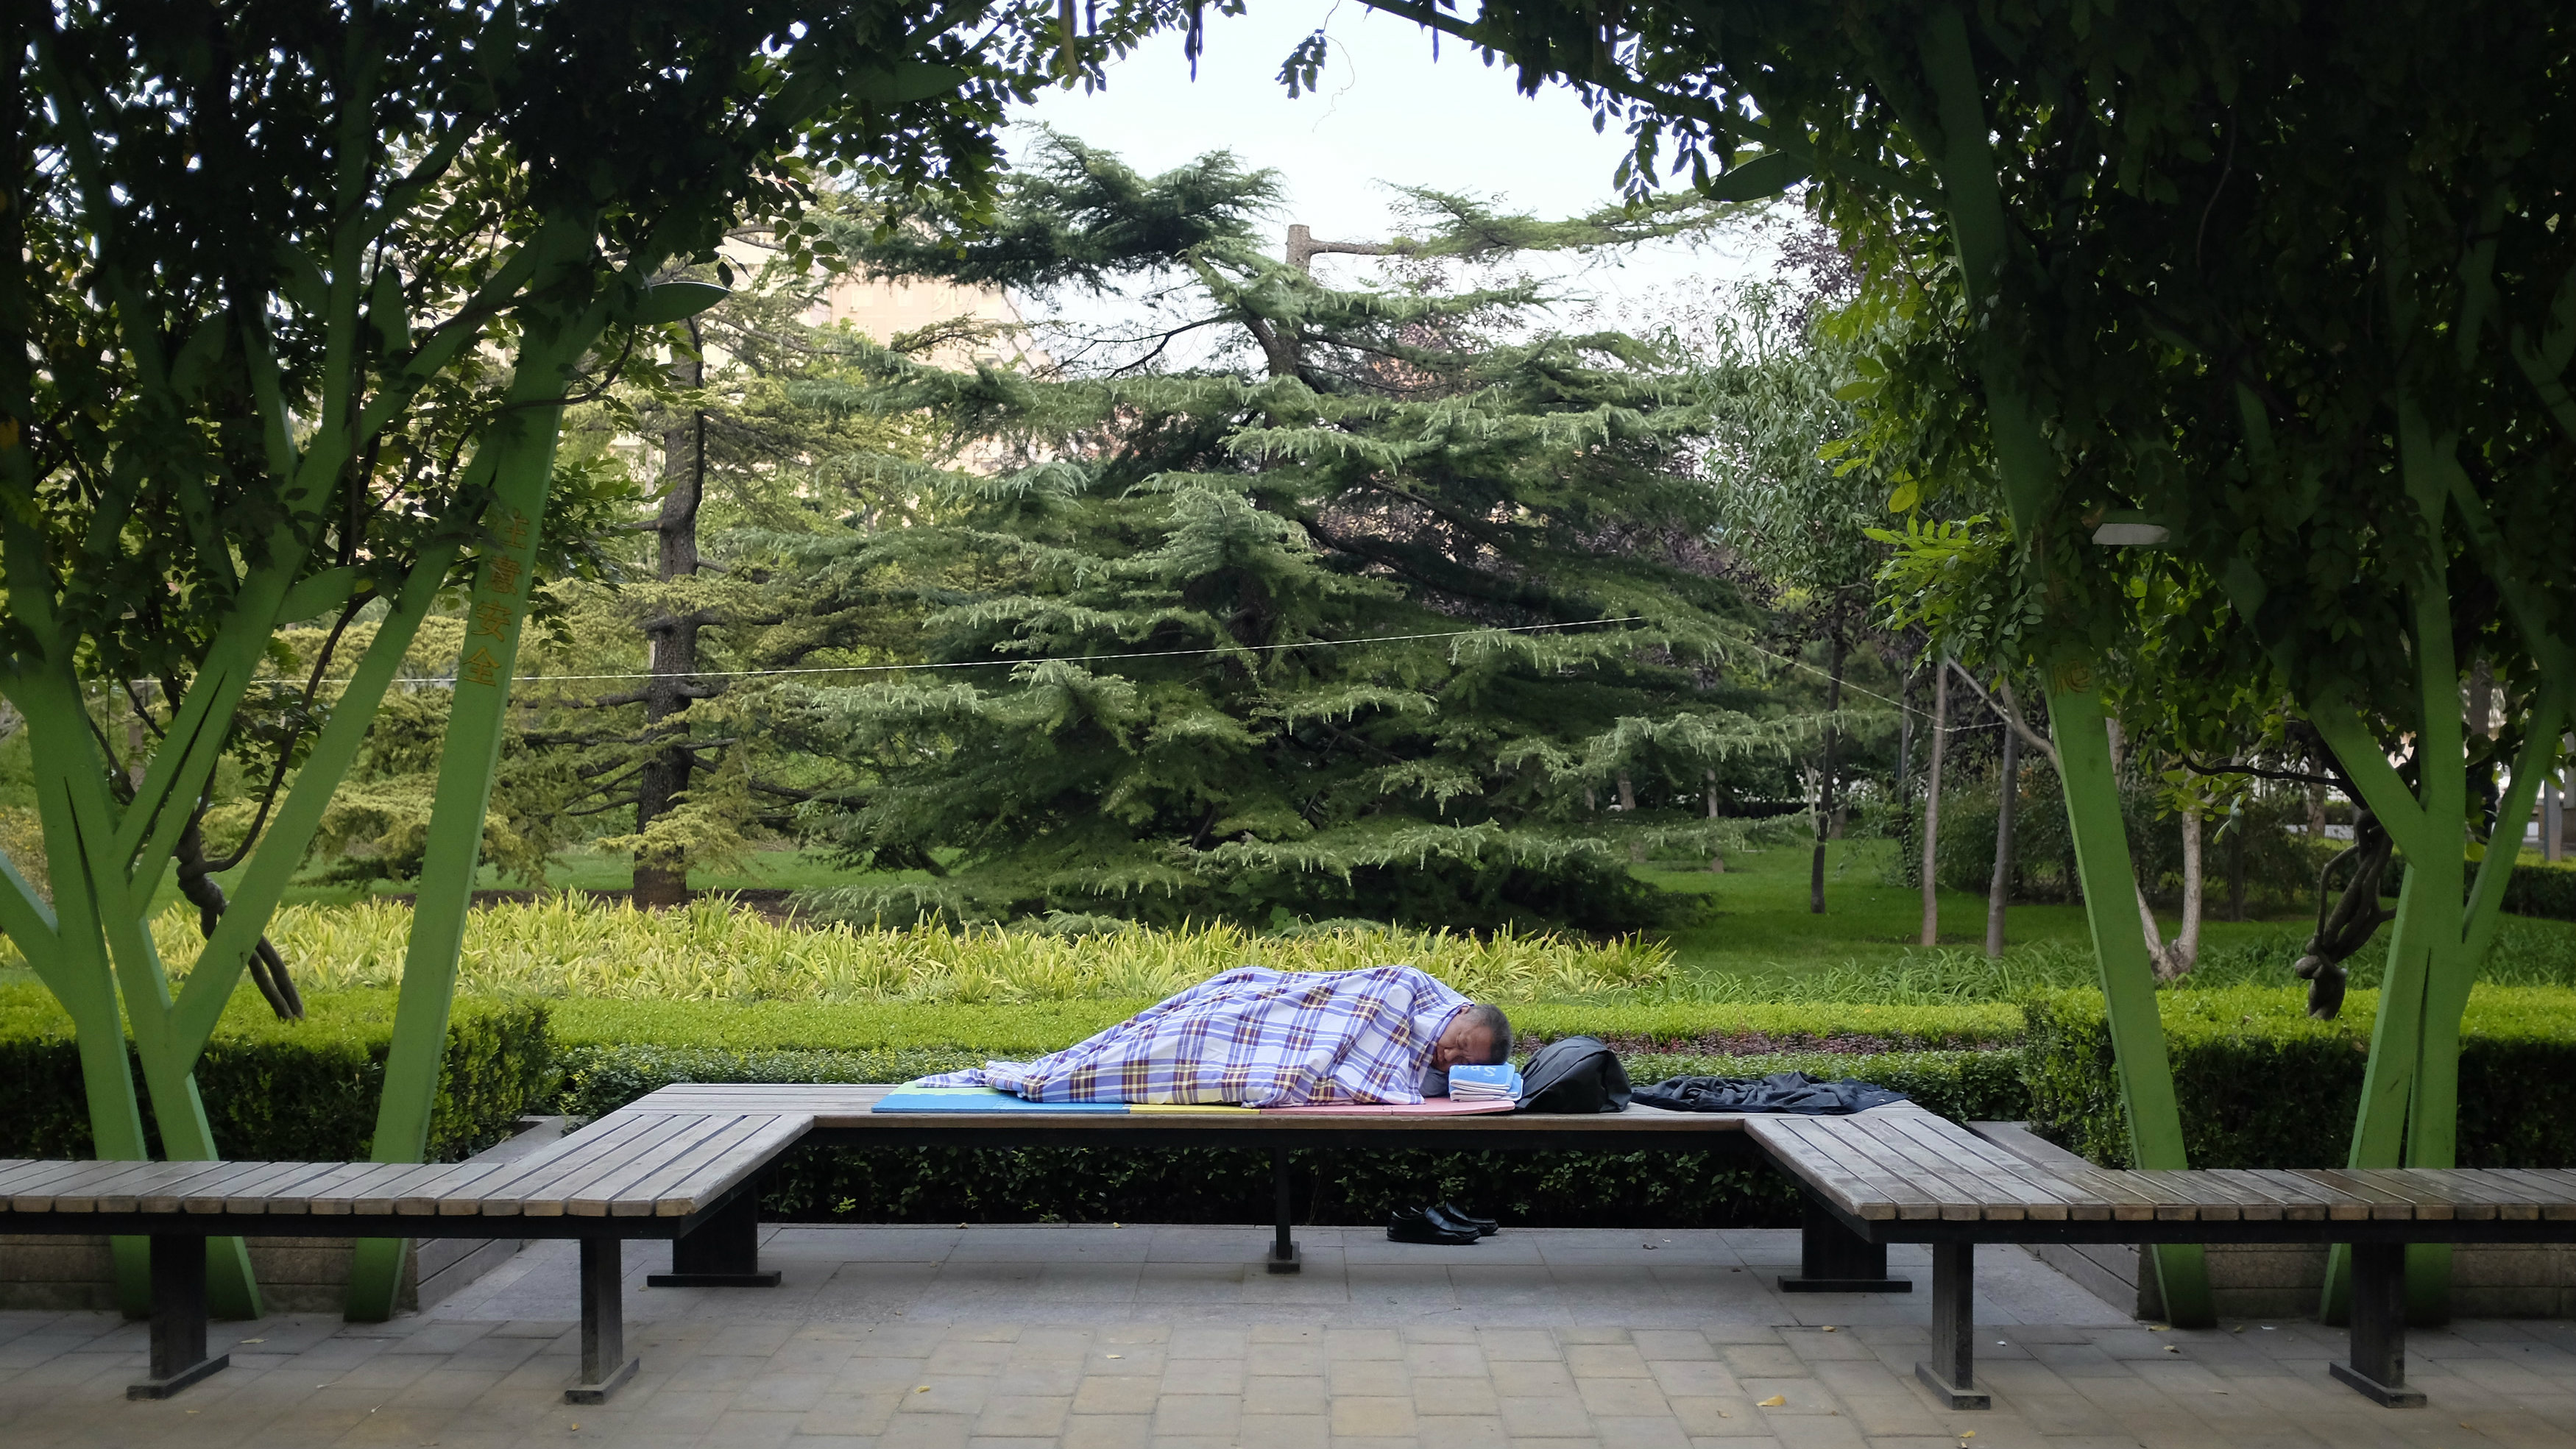 A man sleeps on a bench at public green space in central Beijing, October 6, 2014. REUTERS/Jason Lee